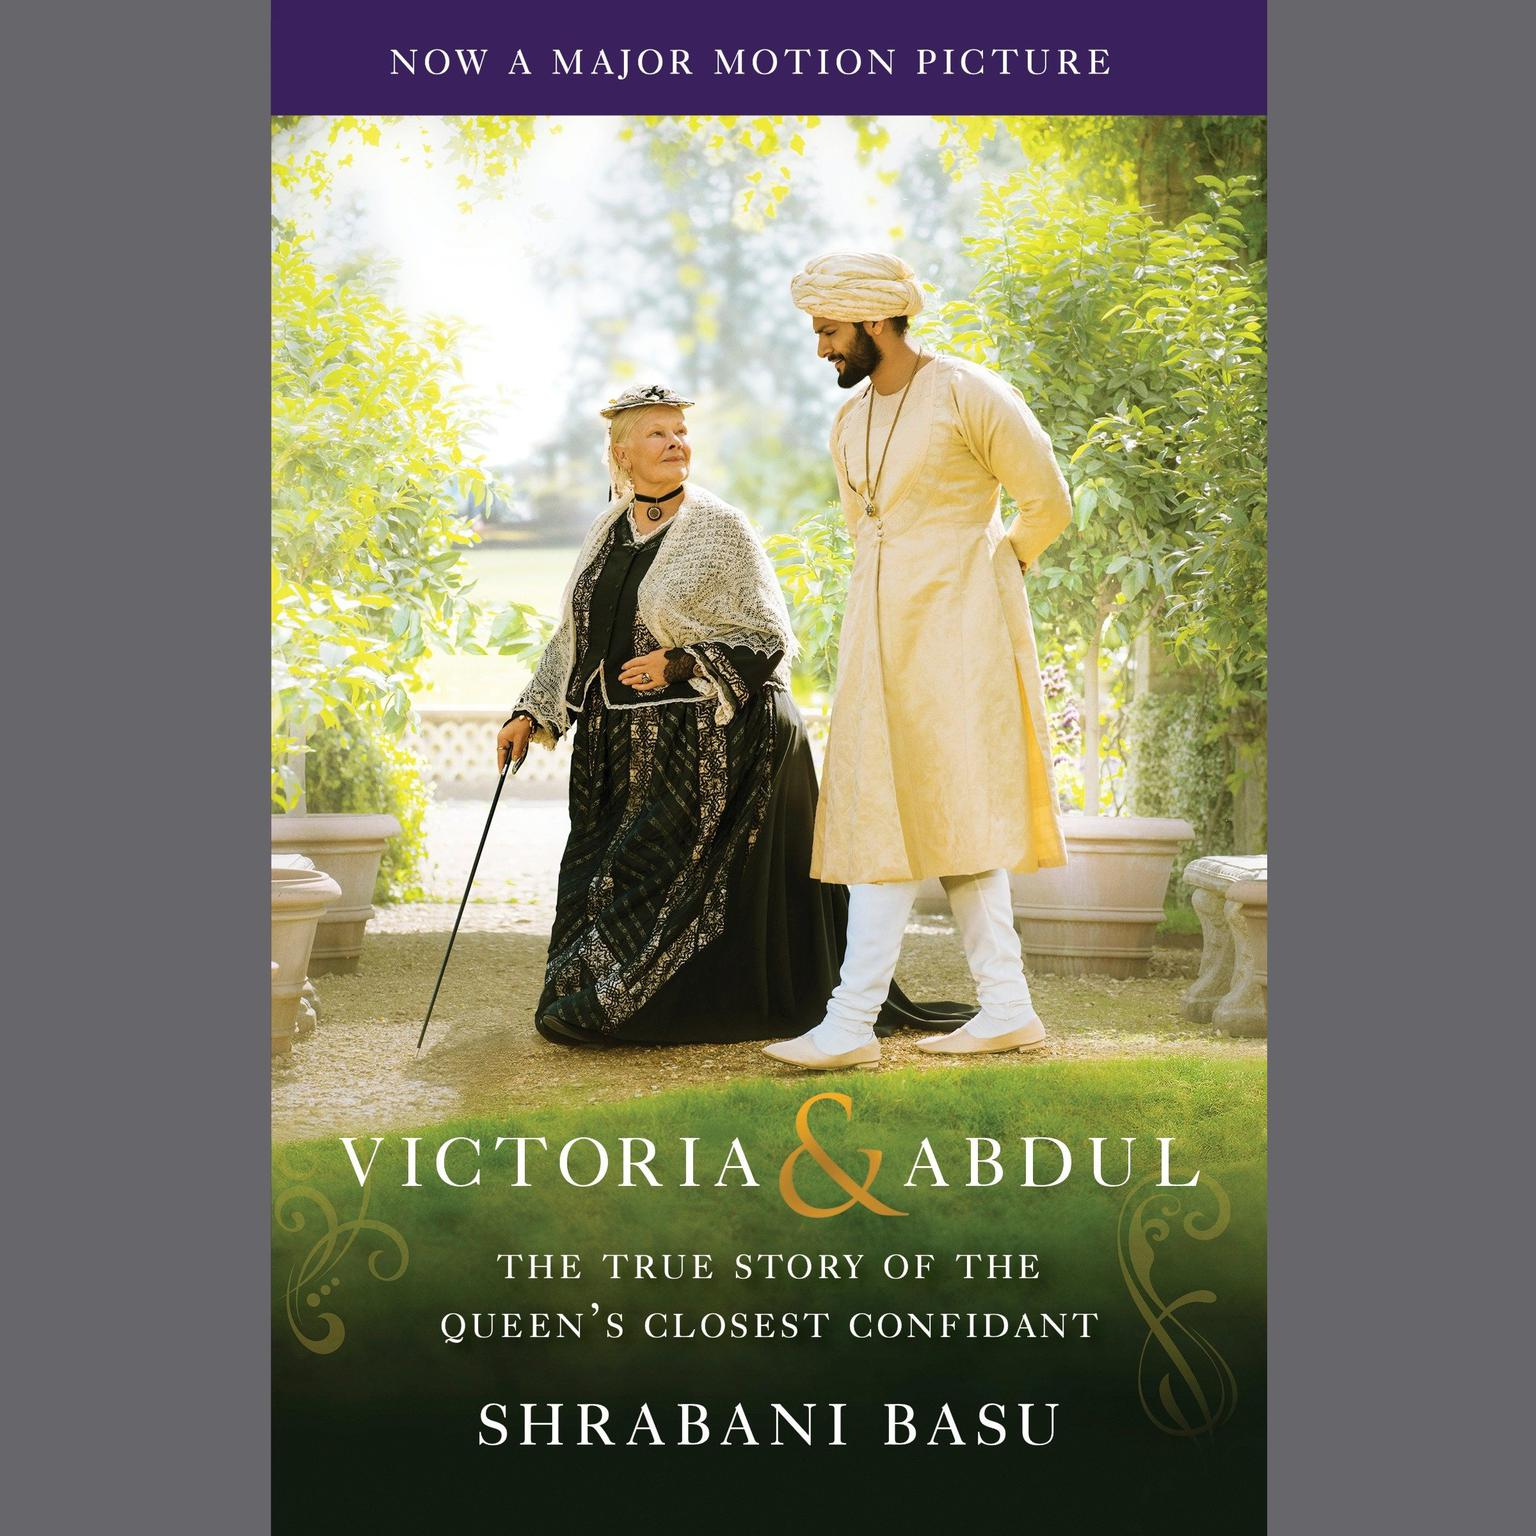 Printable Victoria & Abdul (Movie Tie-in): The True Story of the Queen's Closest Confidant Audiobook Cover Art